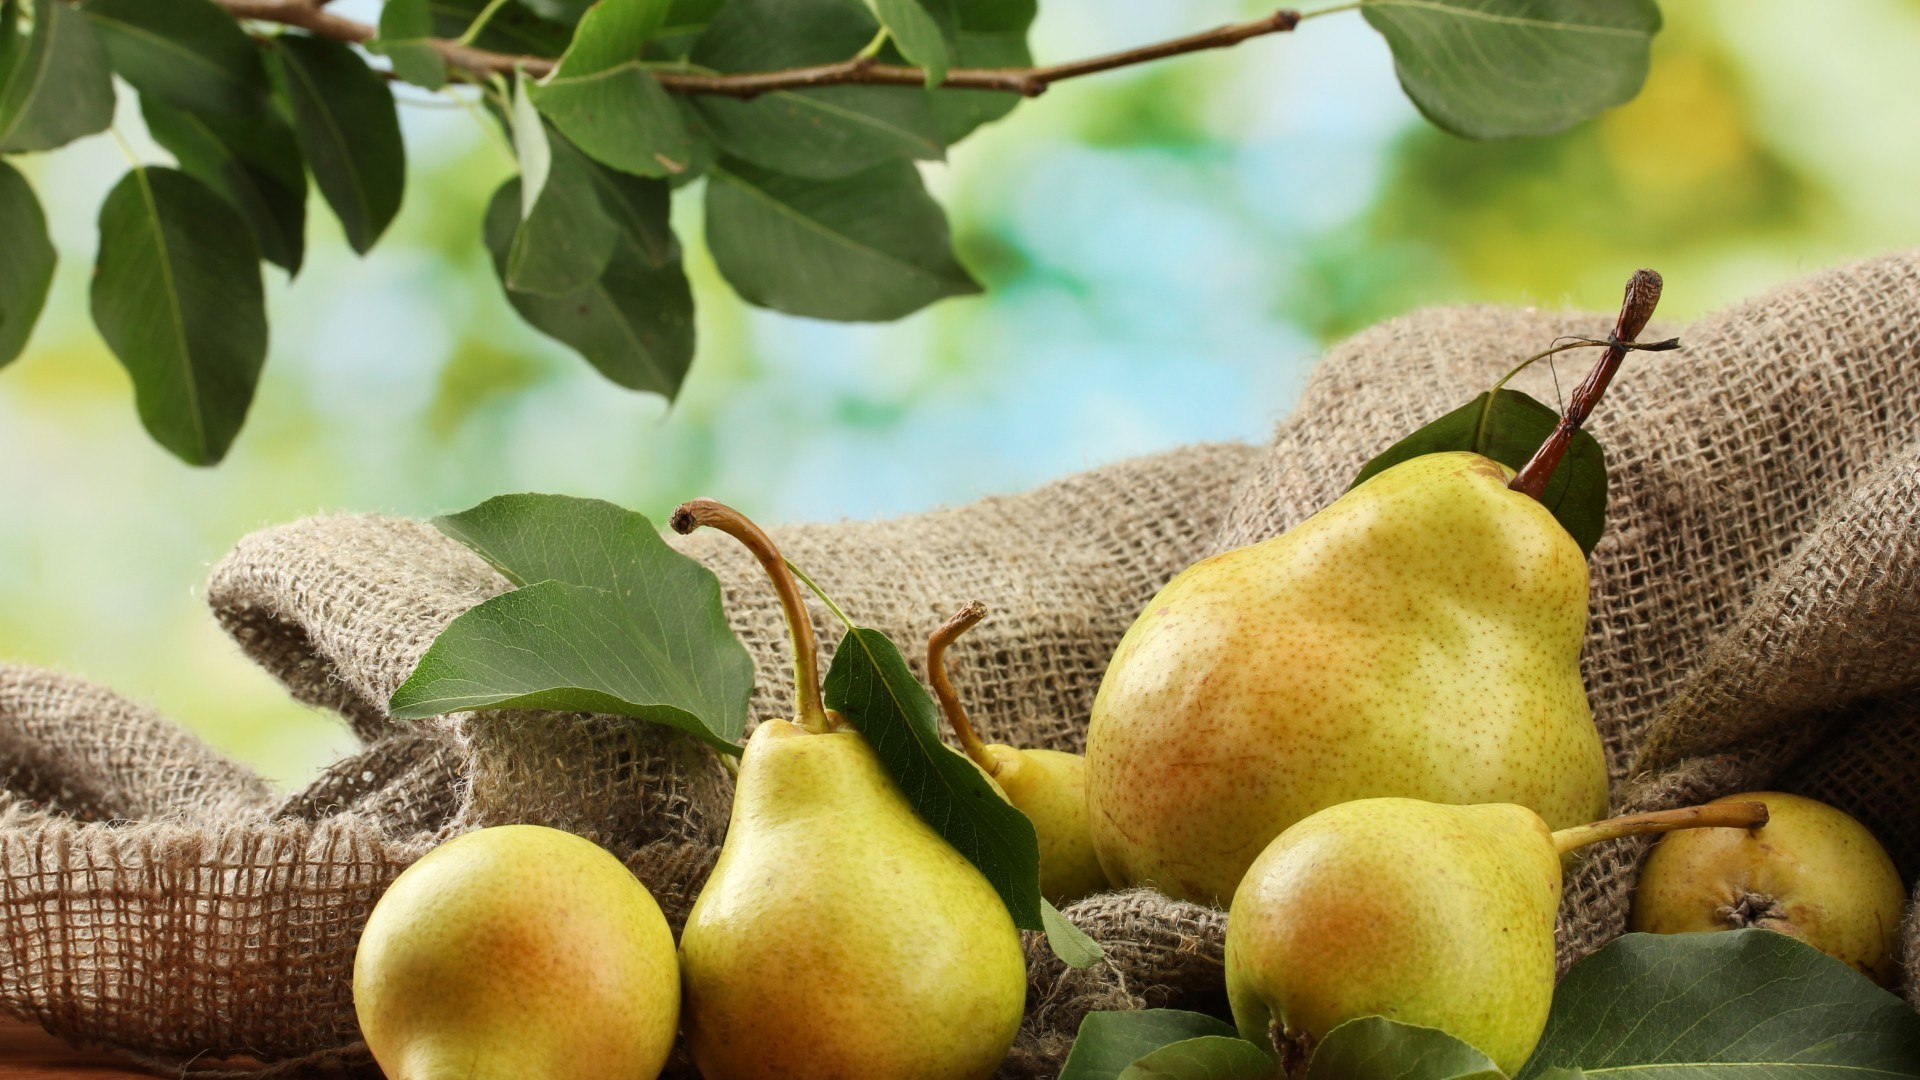 fruit food leaf pasture juicy apple pear nature fall healthy agriculture grow confection nutrition flora health desktop close-up tree